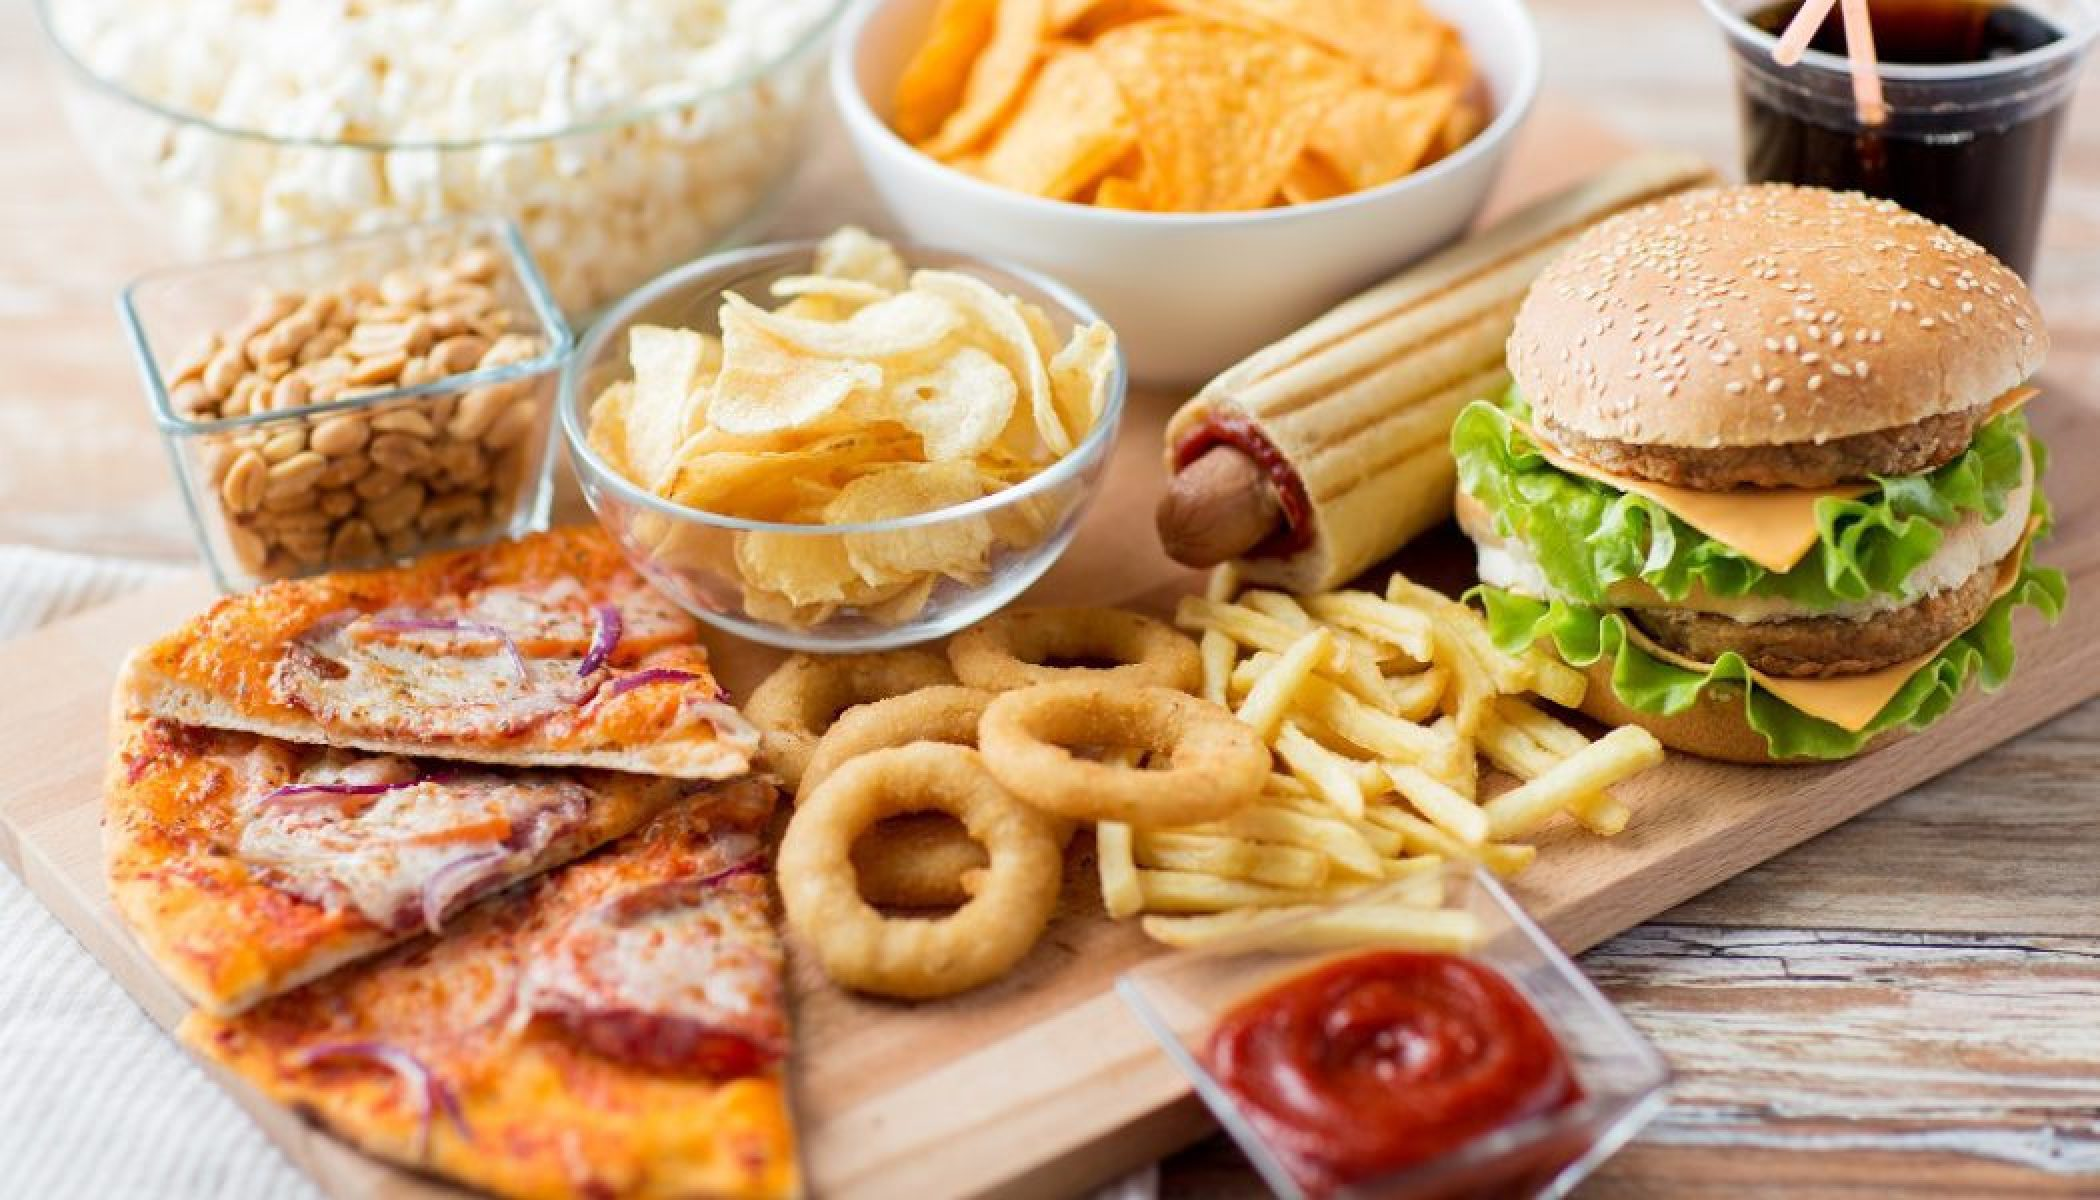 Stop Eating This And Stop The Chronic Pain | El Paso, TX Chiropractor